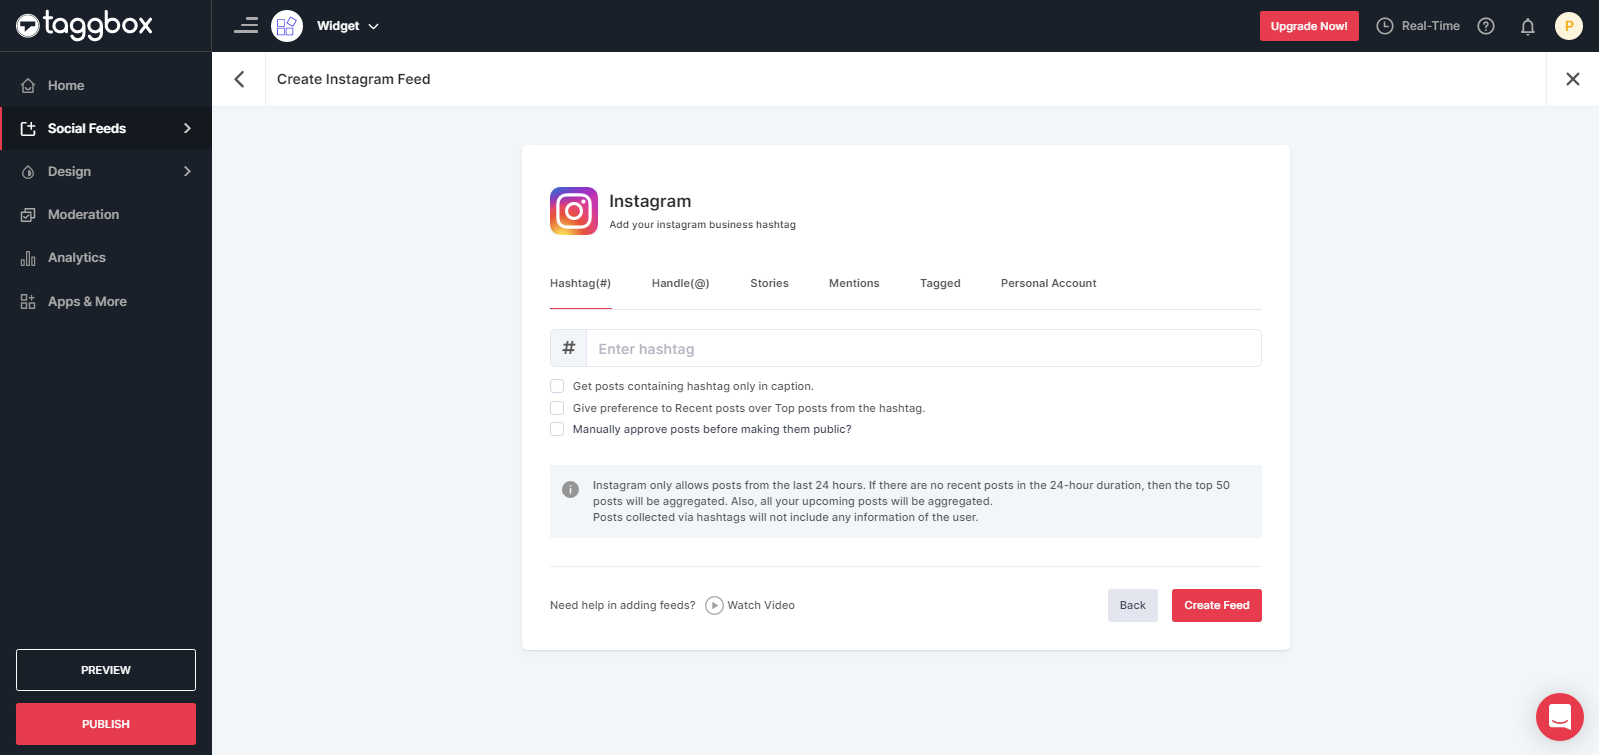 Collect Instagram Posts Using Hashtag